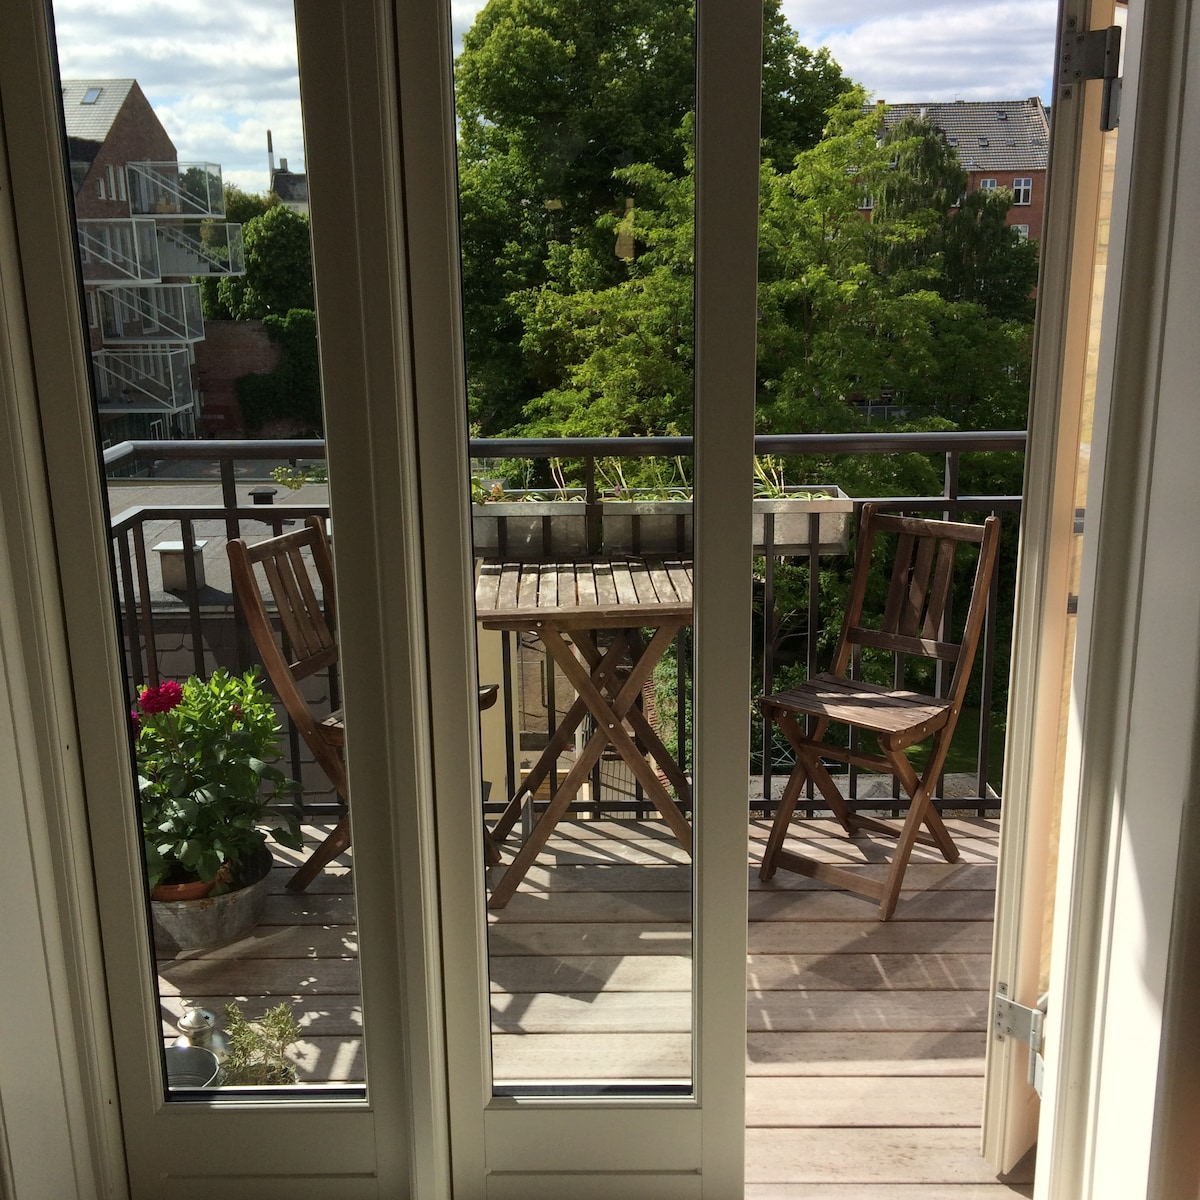 Lovely apartment with sunny balcony